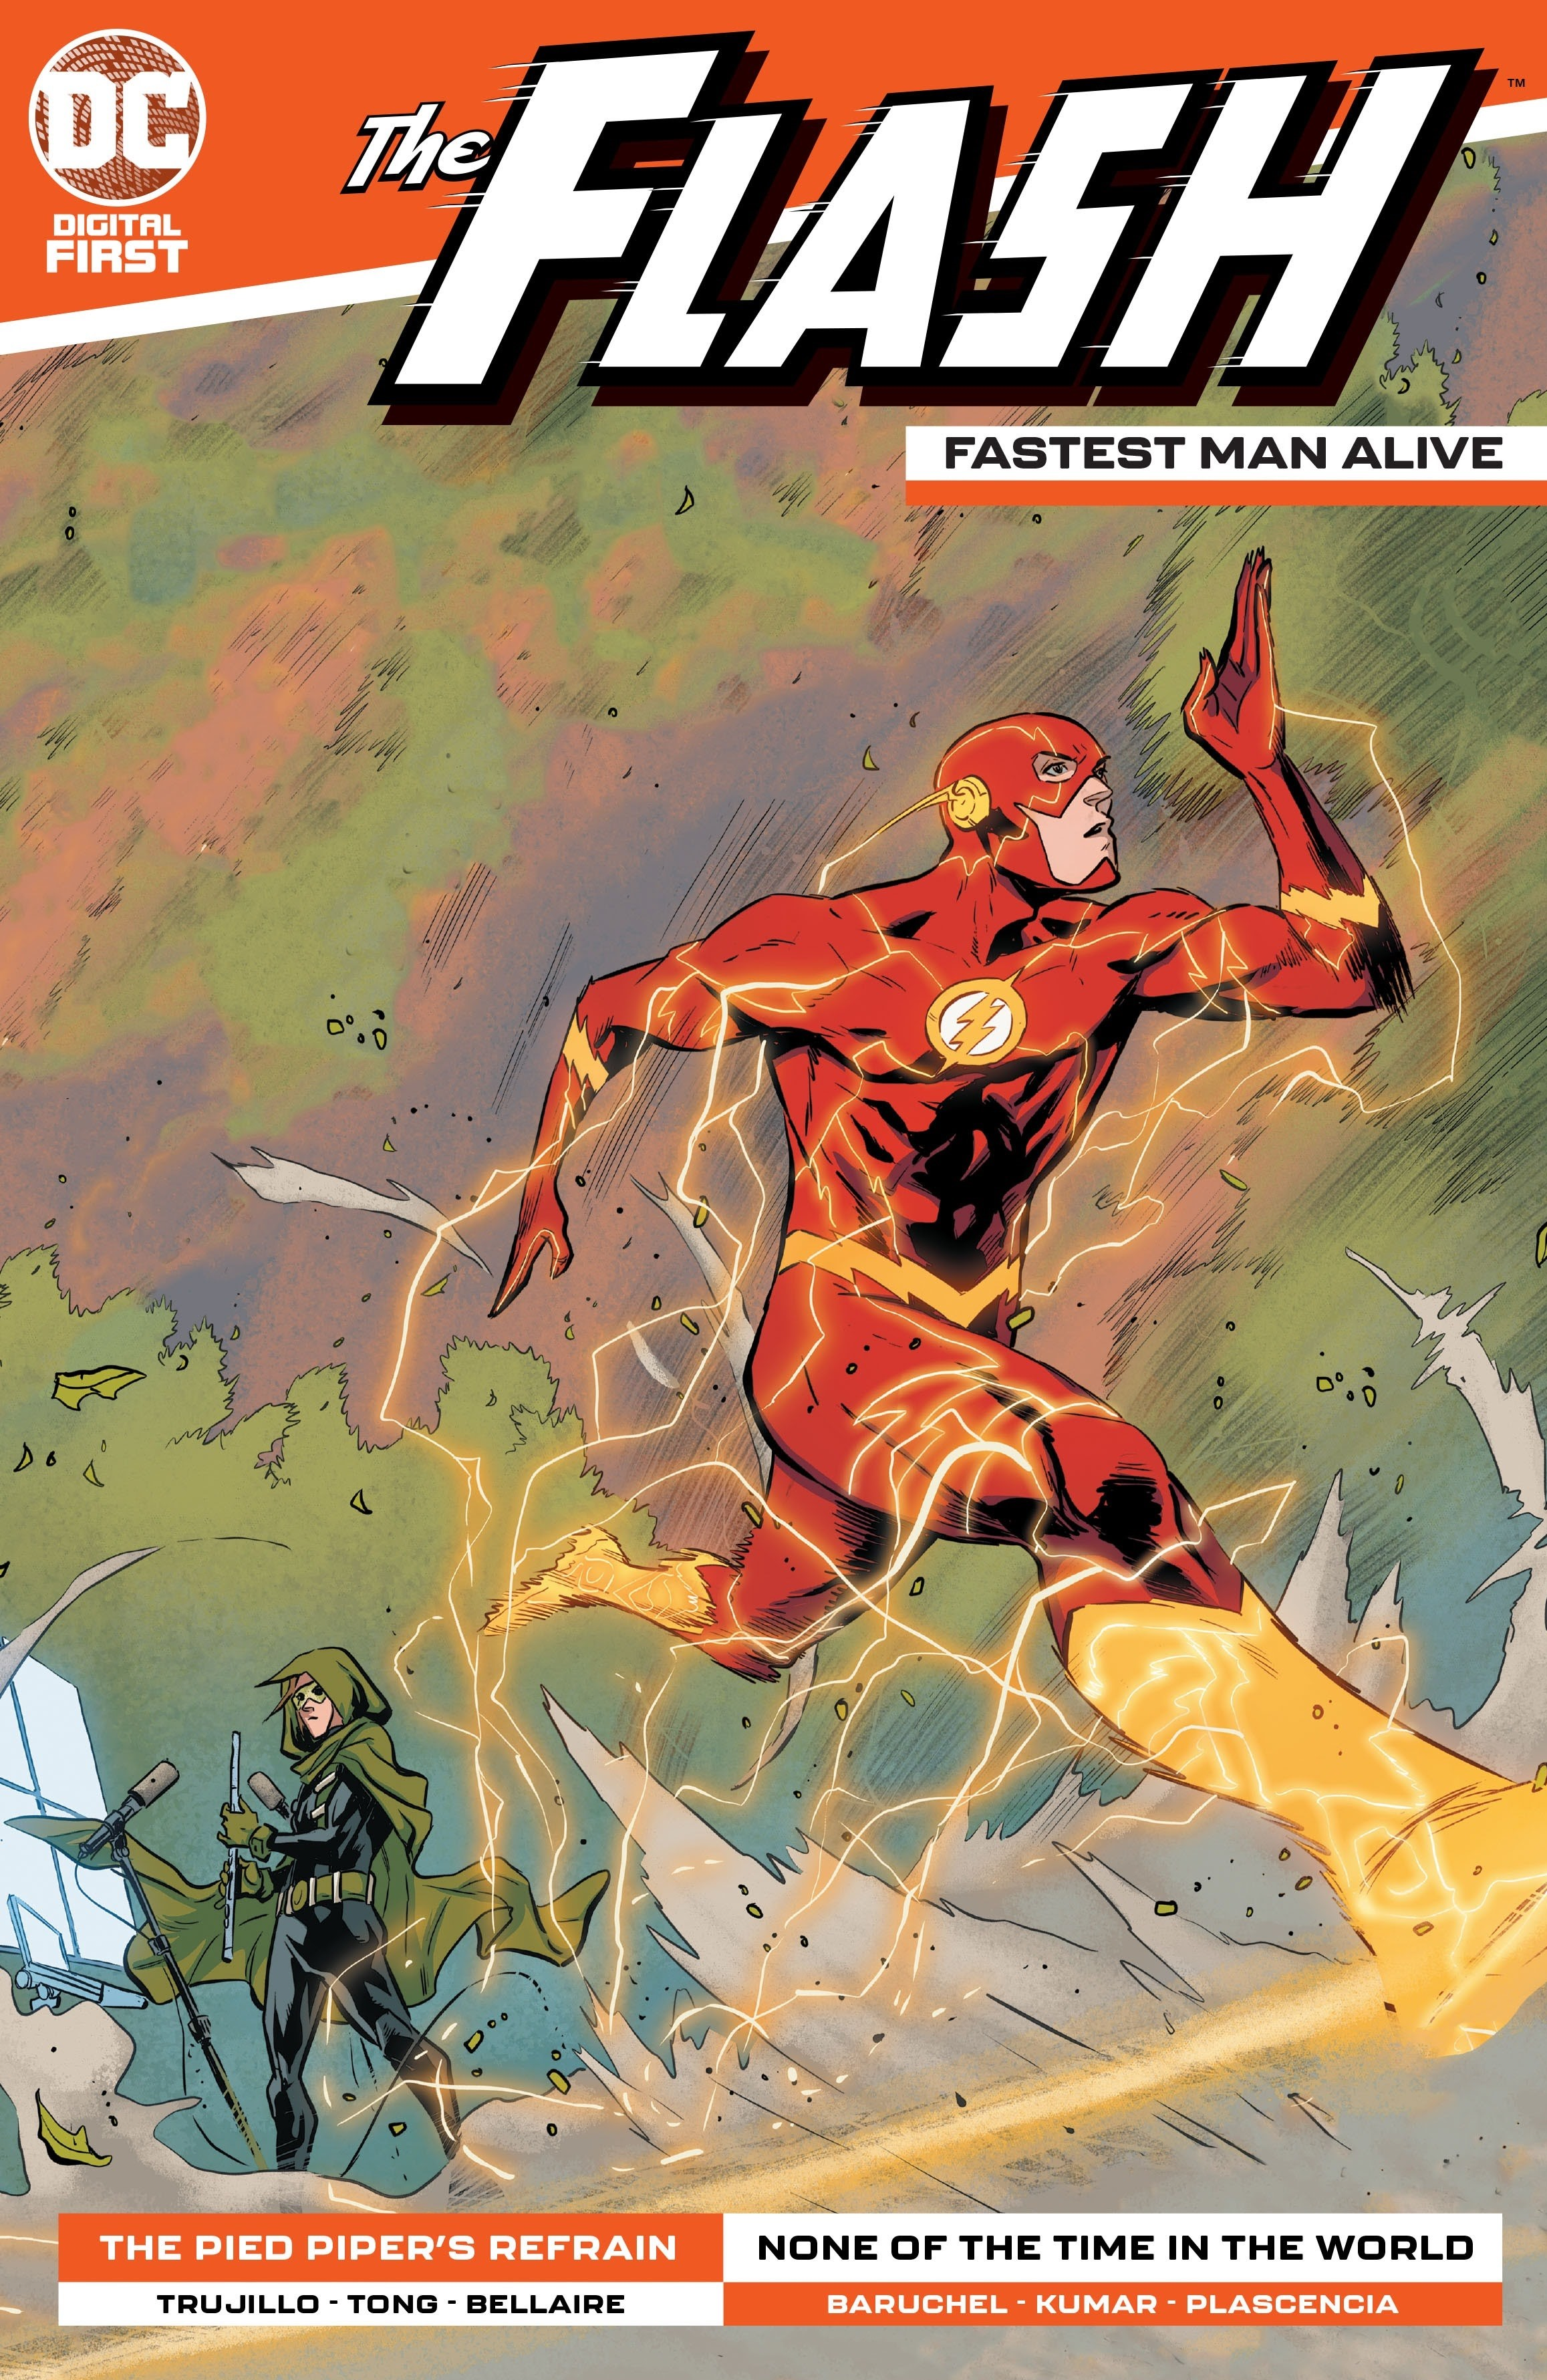 The Flash: Fastest Man Alive Vol 1 7 (Digital)